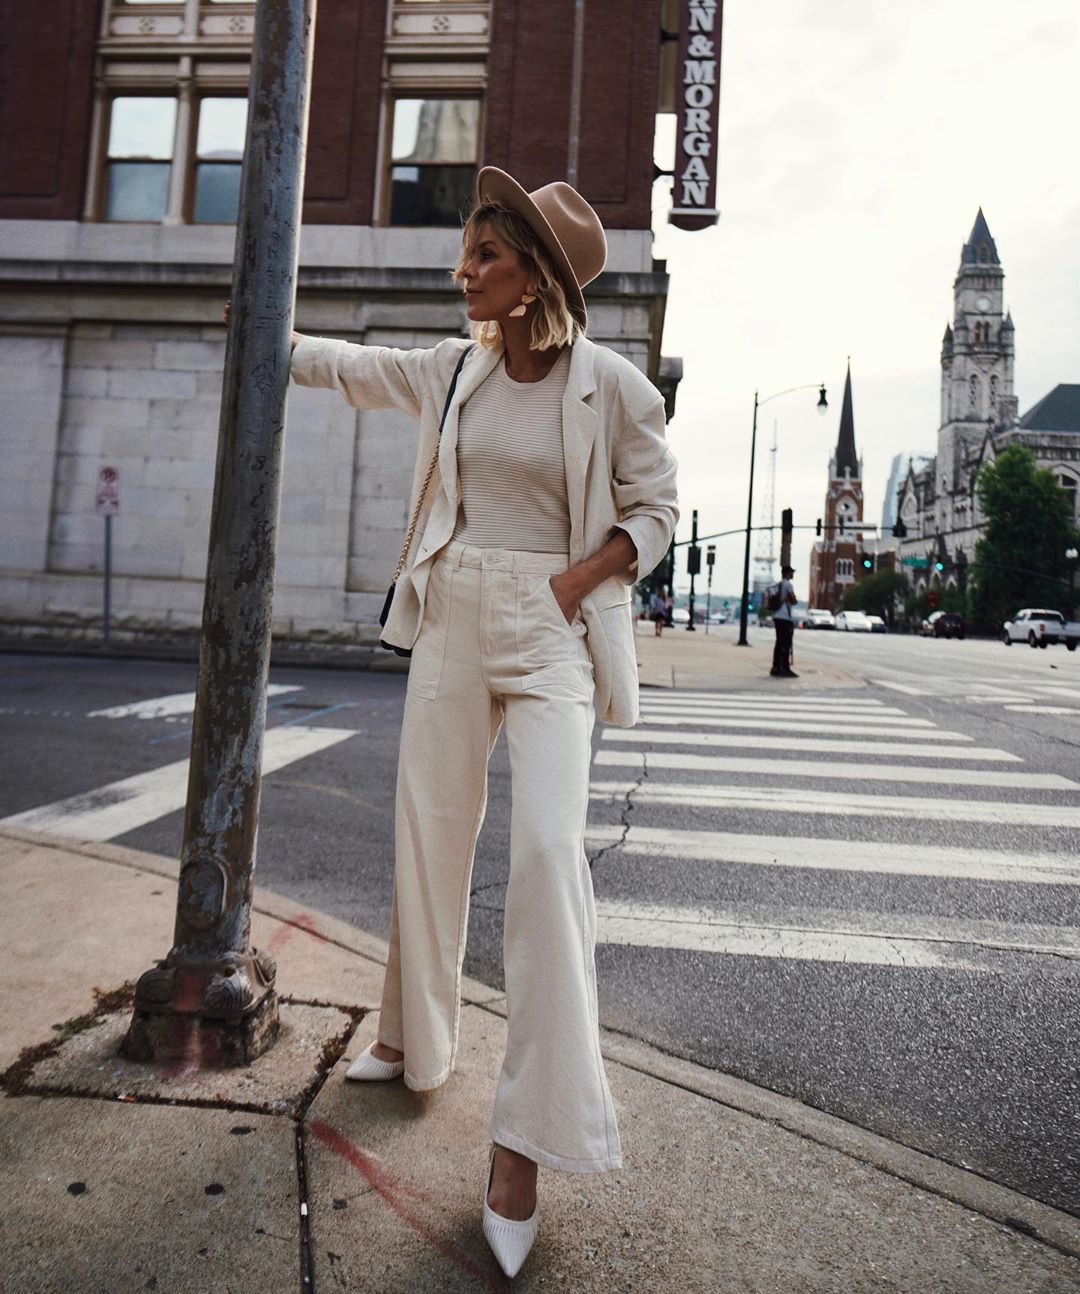 This All-White Look is So Stylish for Spring